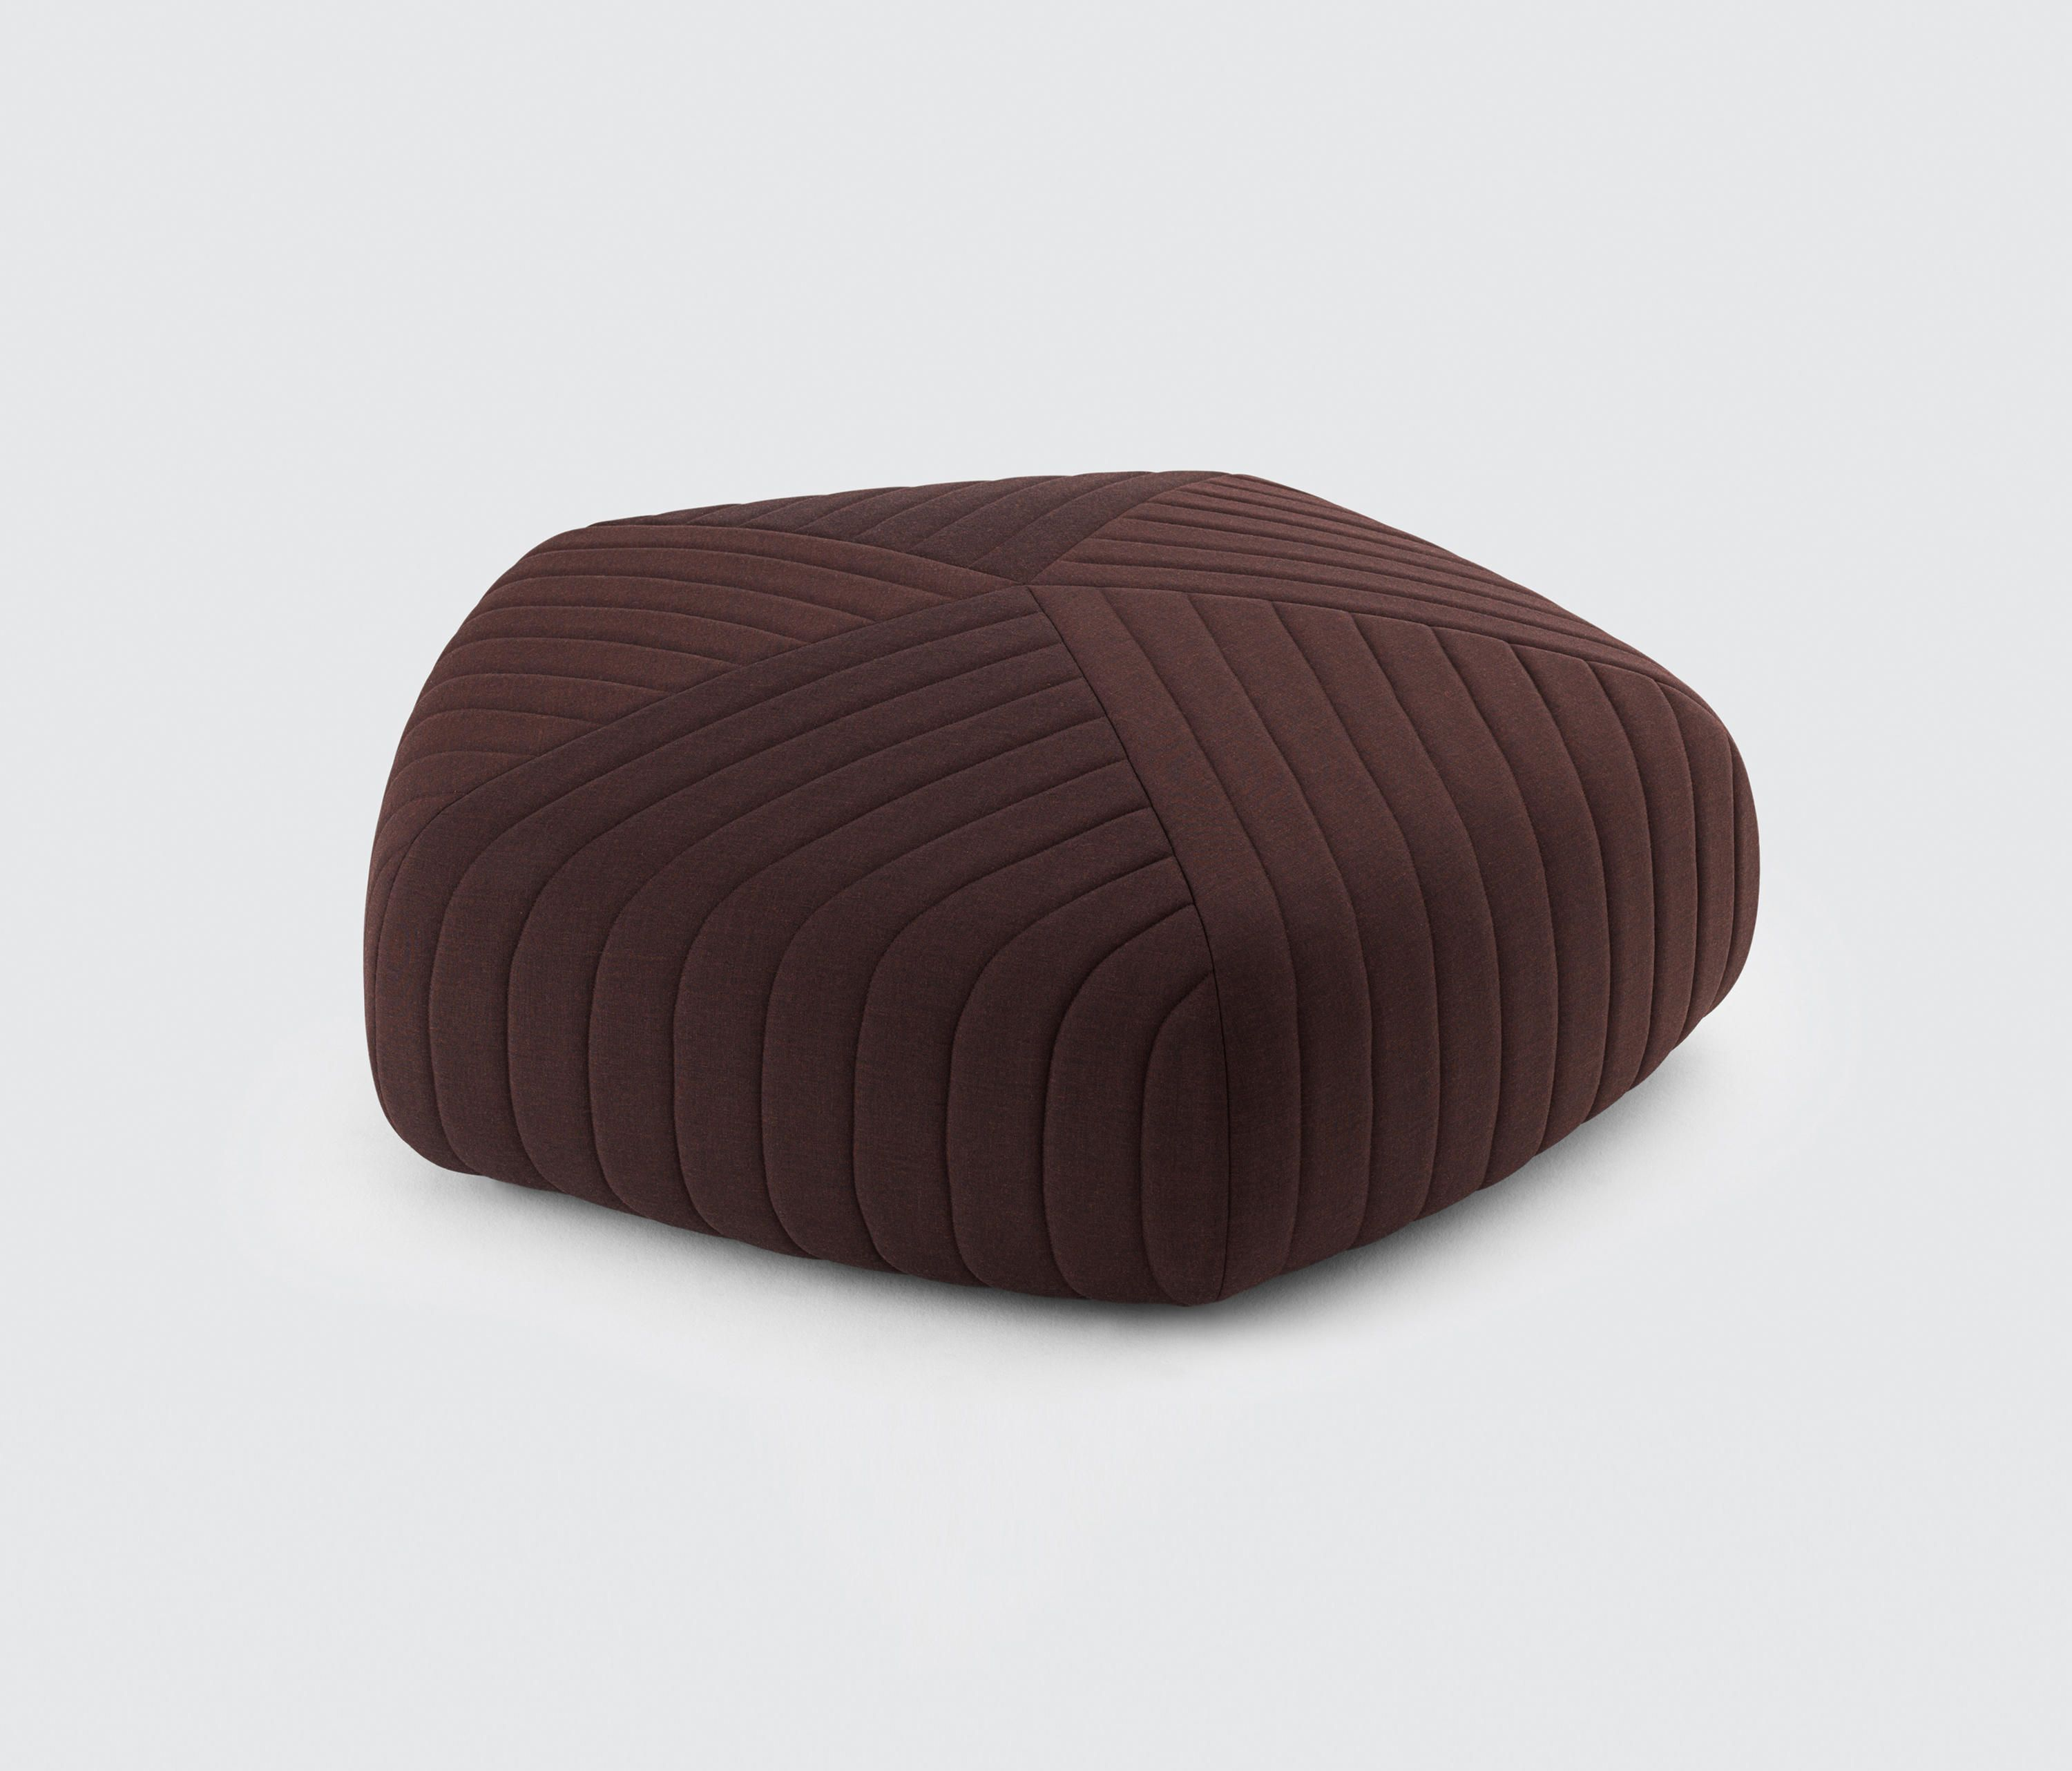 Pouf Xl Five Pouf Xl Designer Poufs From Muuto All Information